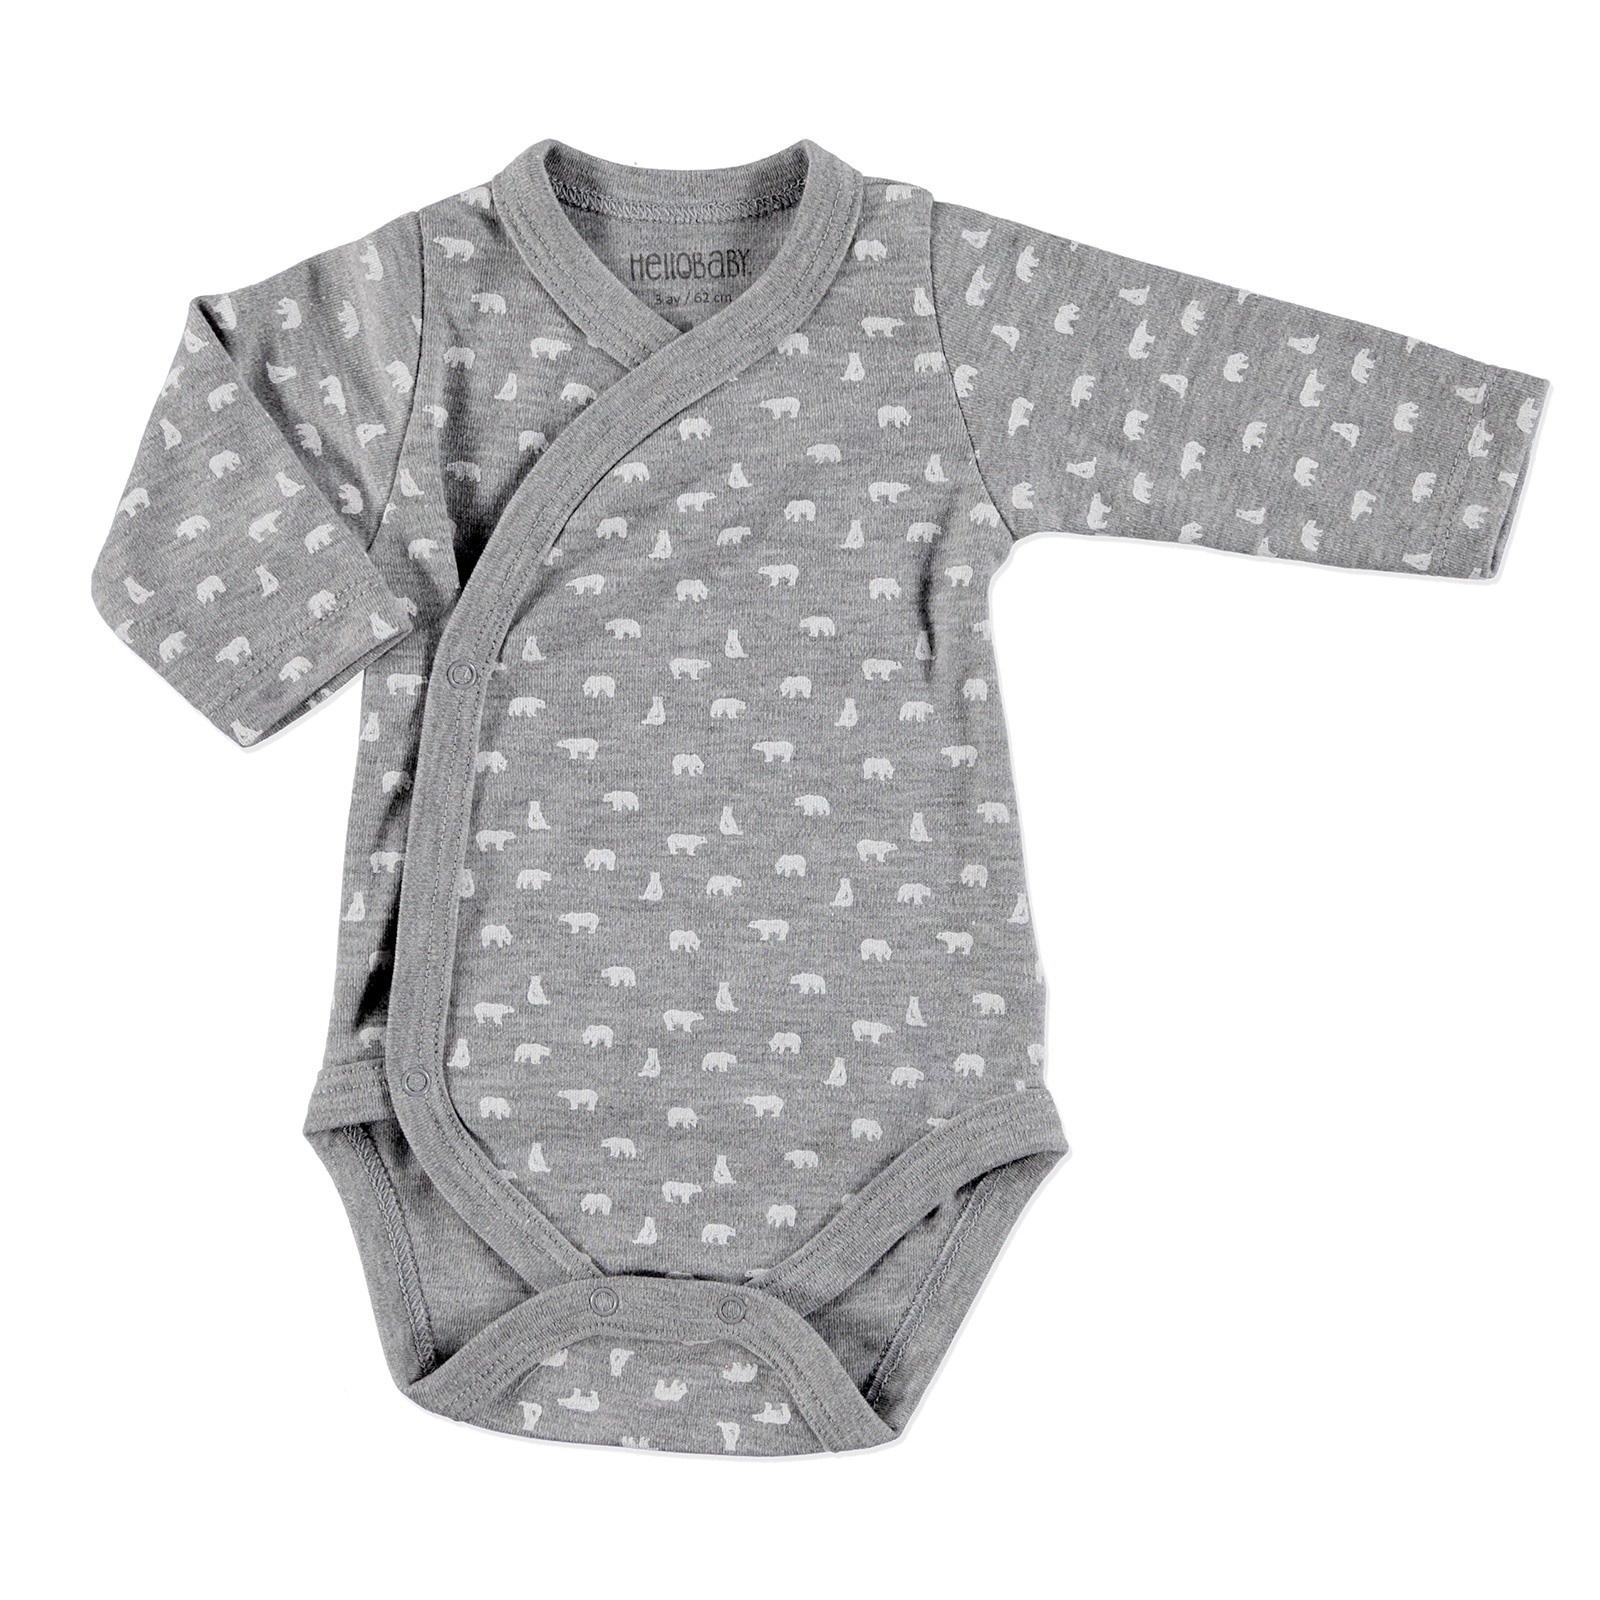 Ebebek HelloBaby Little Cute Paws Bear Printed Baby Bodysuit Footed Trousers Set